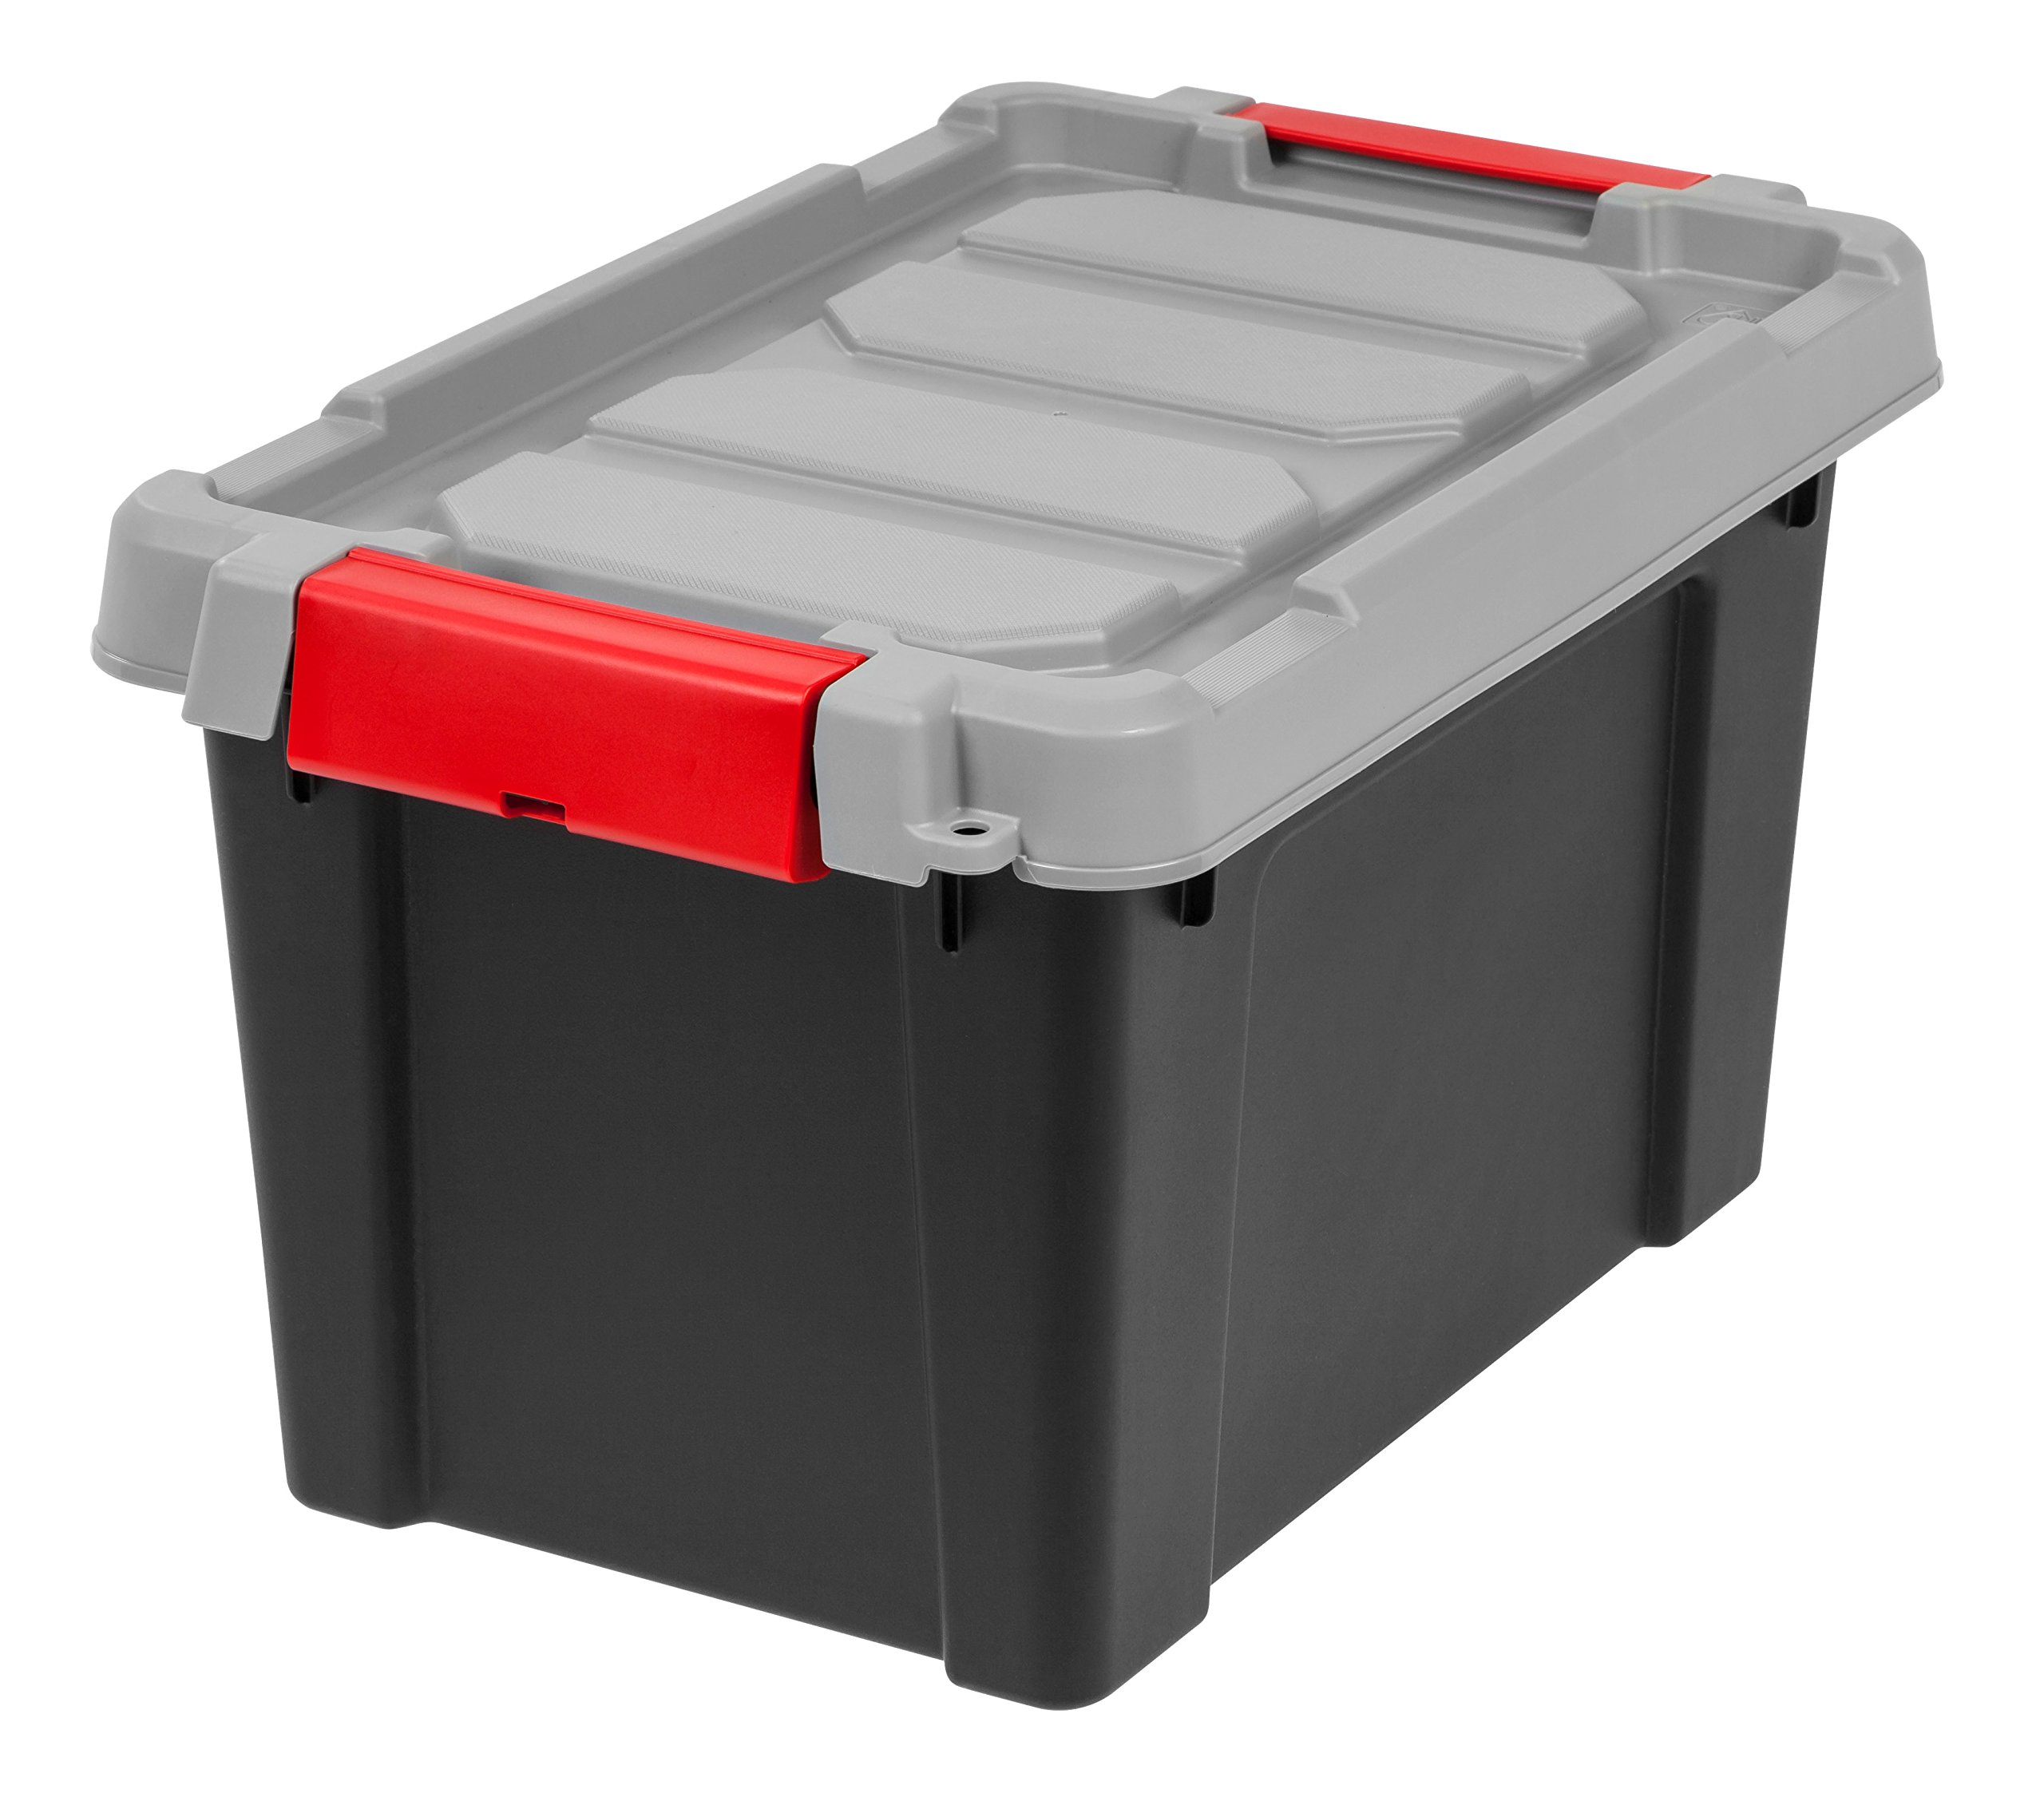 IRIS 5 Gallon Store-it-All Heavy Duty Stackable Utility Tote, Black with Red Buckle